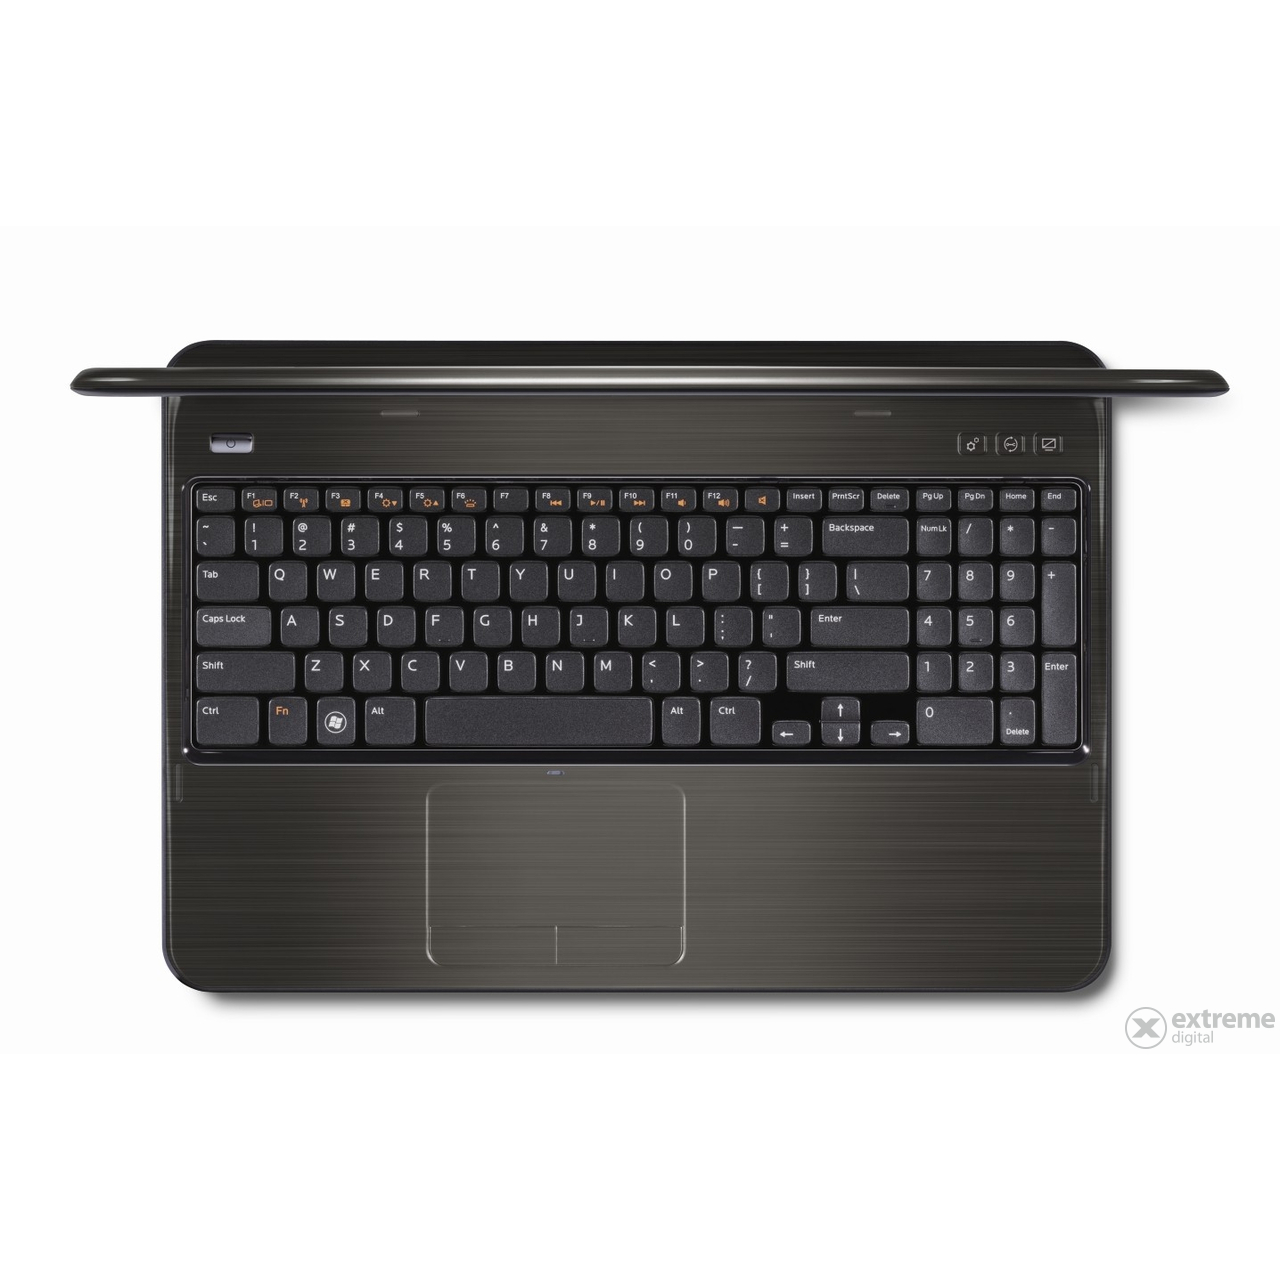 Dell Inspiron 15R N5110_141196 notebook